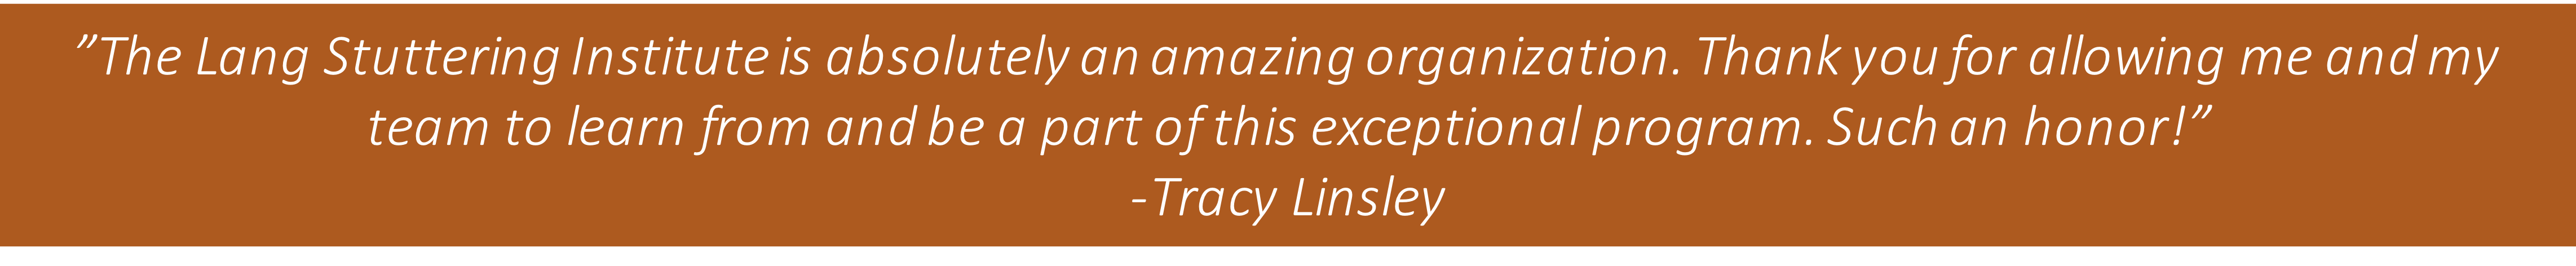 Tracy Linsley Quote